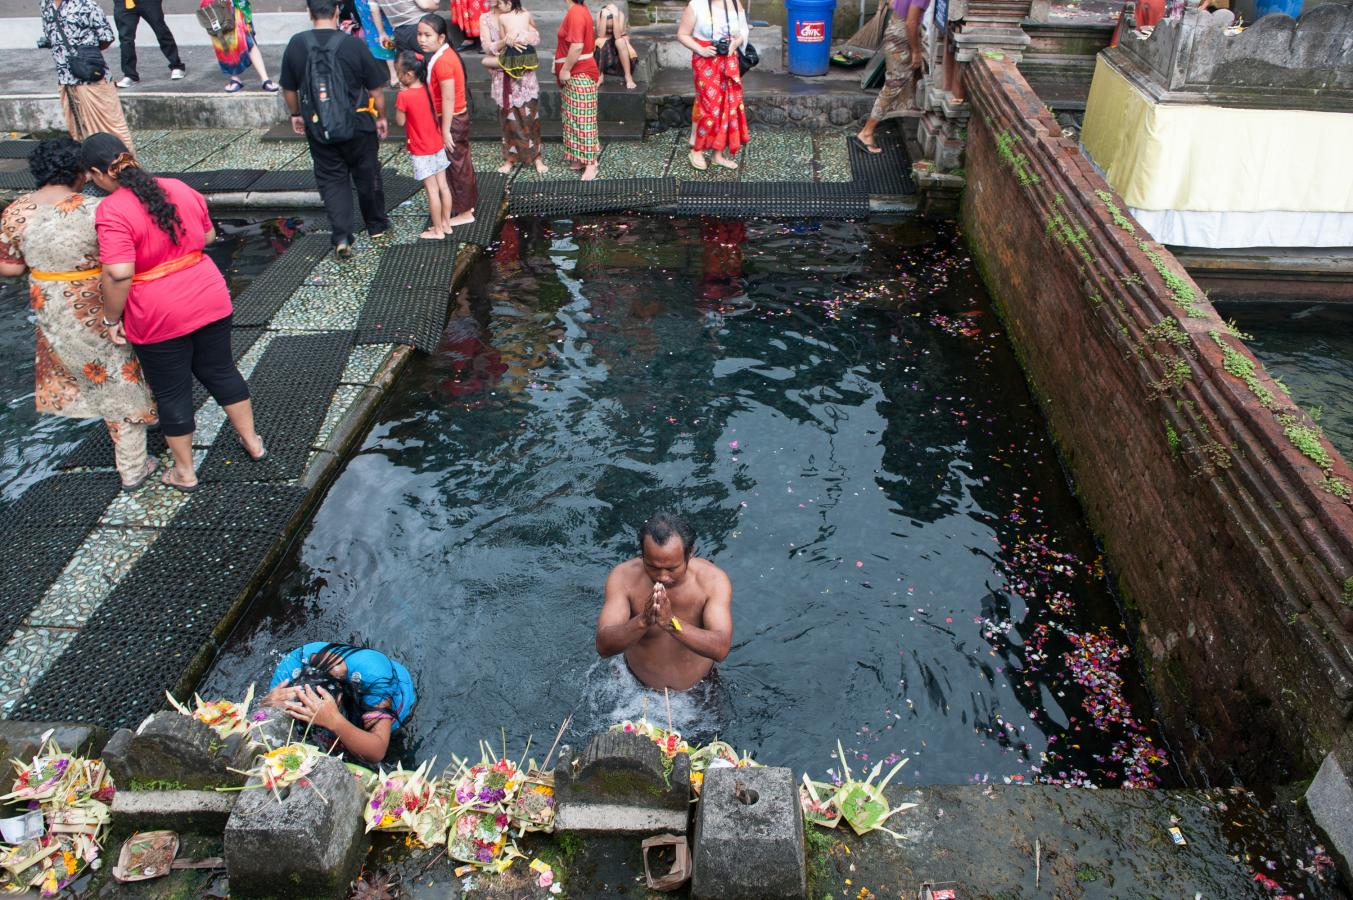 purification-in-the-tirta-empul-temple-bali-2013